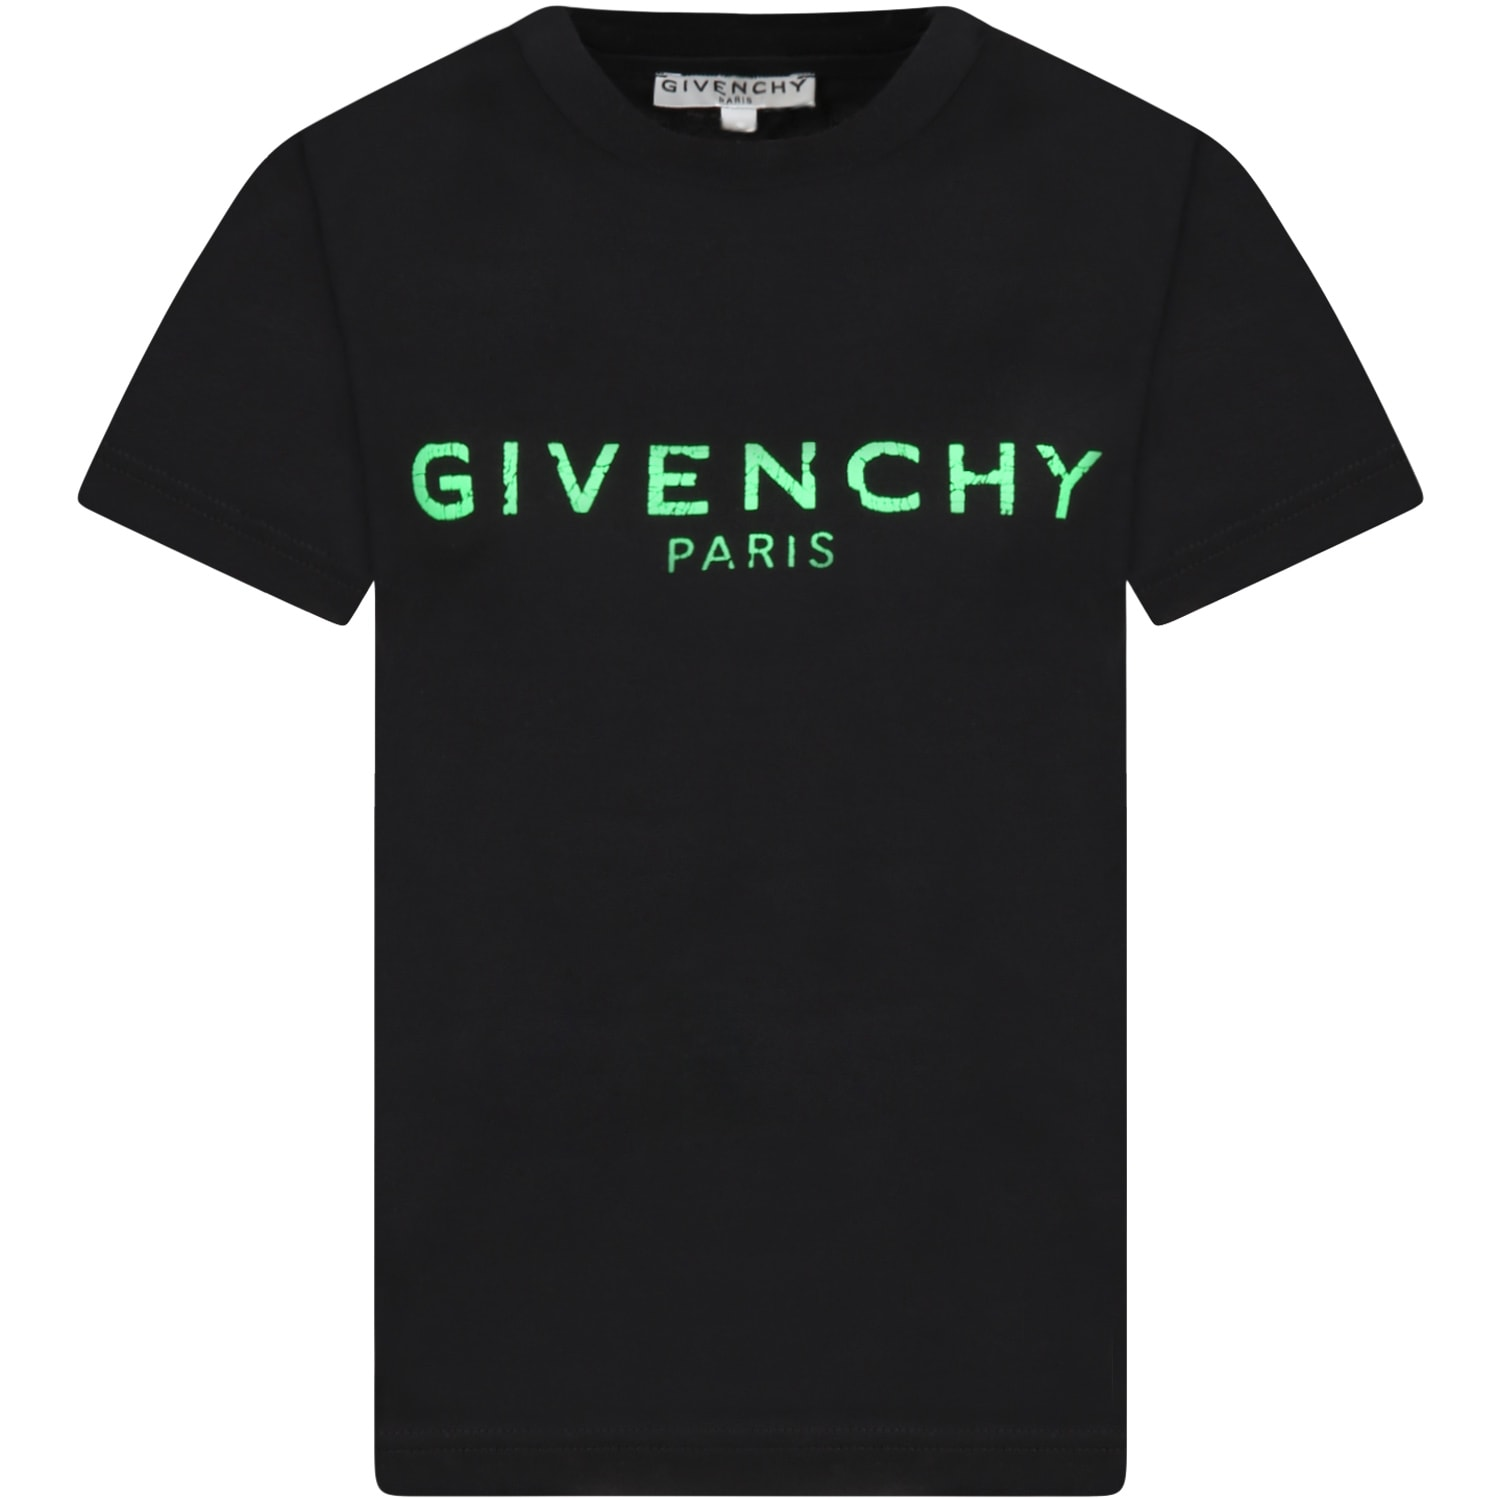 Givenchy Black T-shirt For Kids With Logo